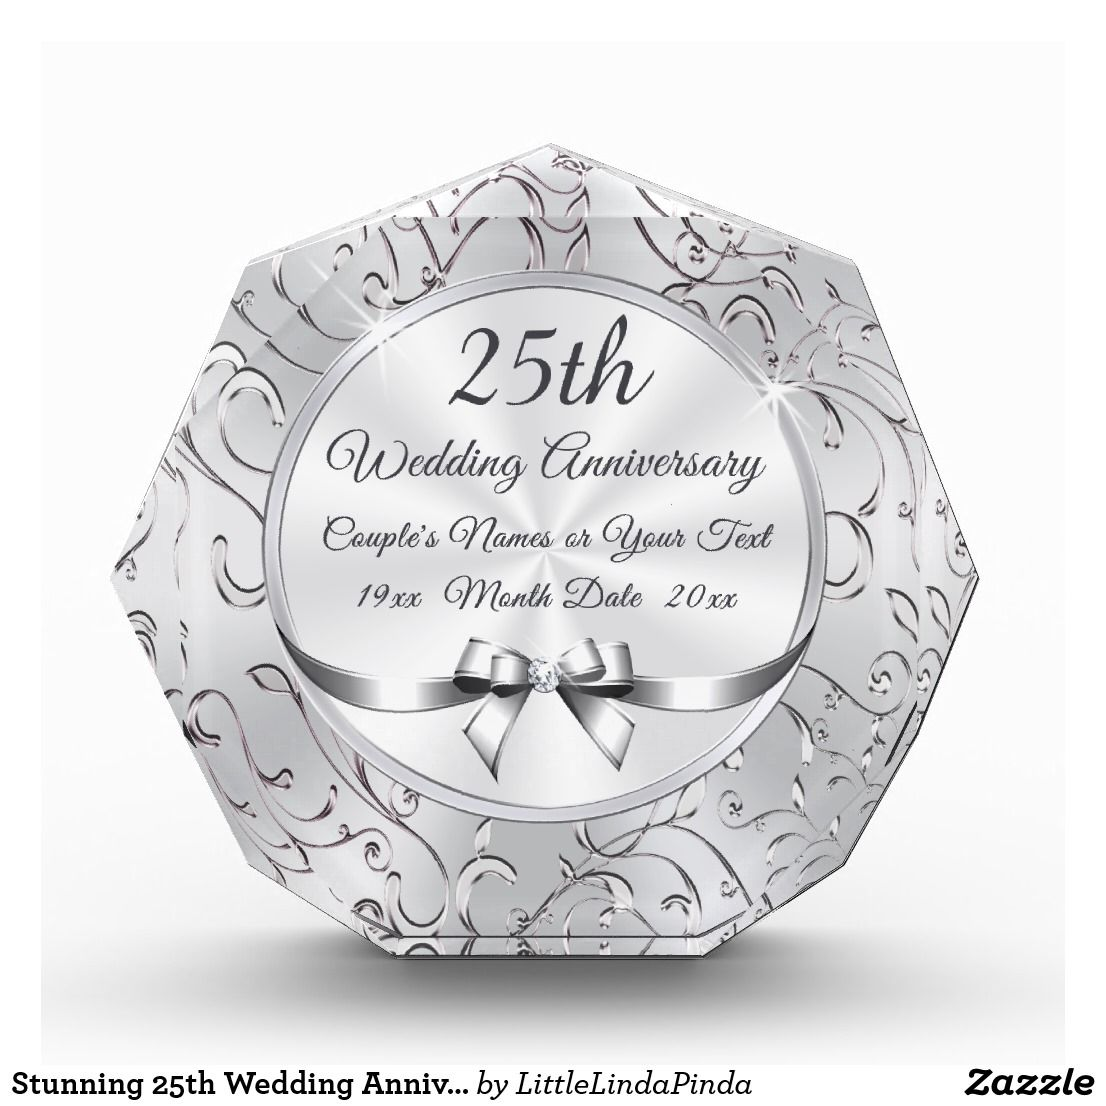 stunning 25th wedding anniversary gift ideas in 2018 | 25th